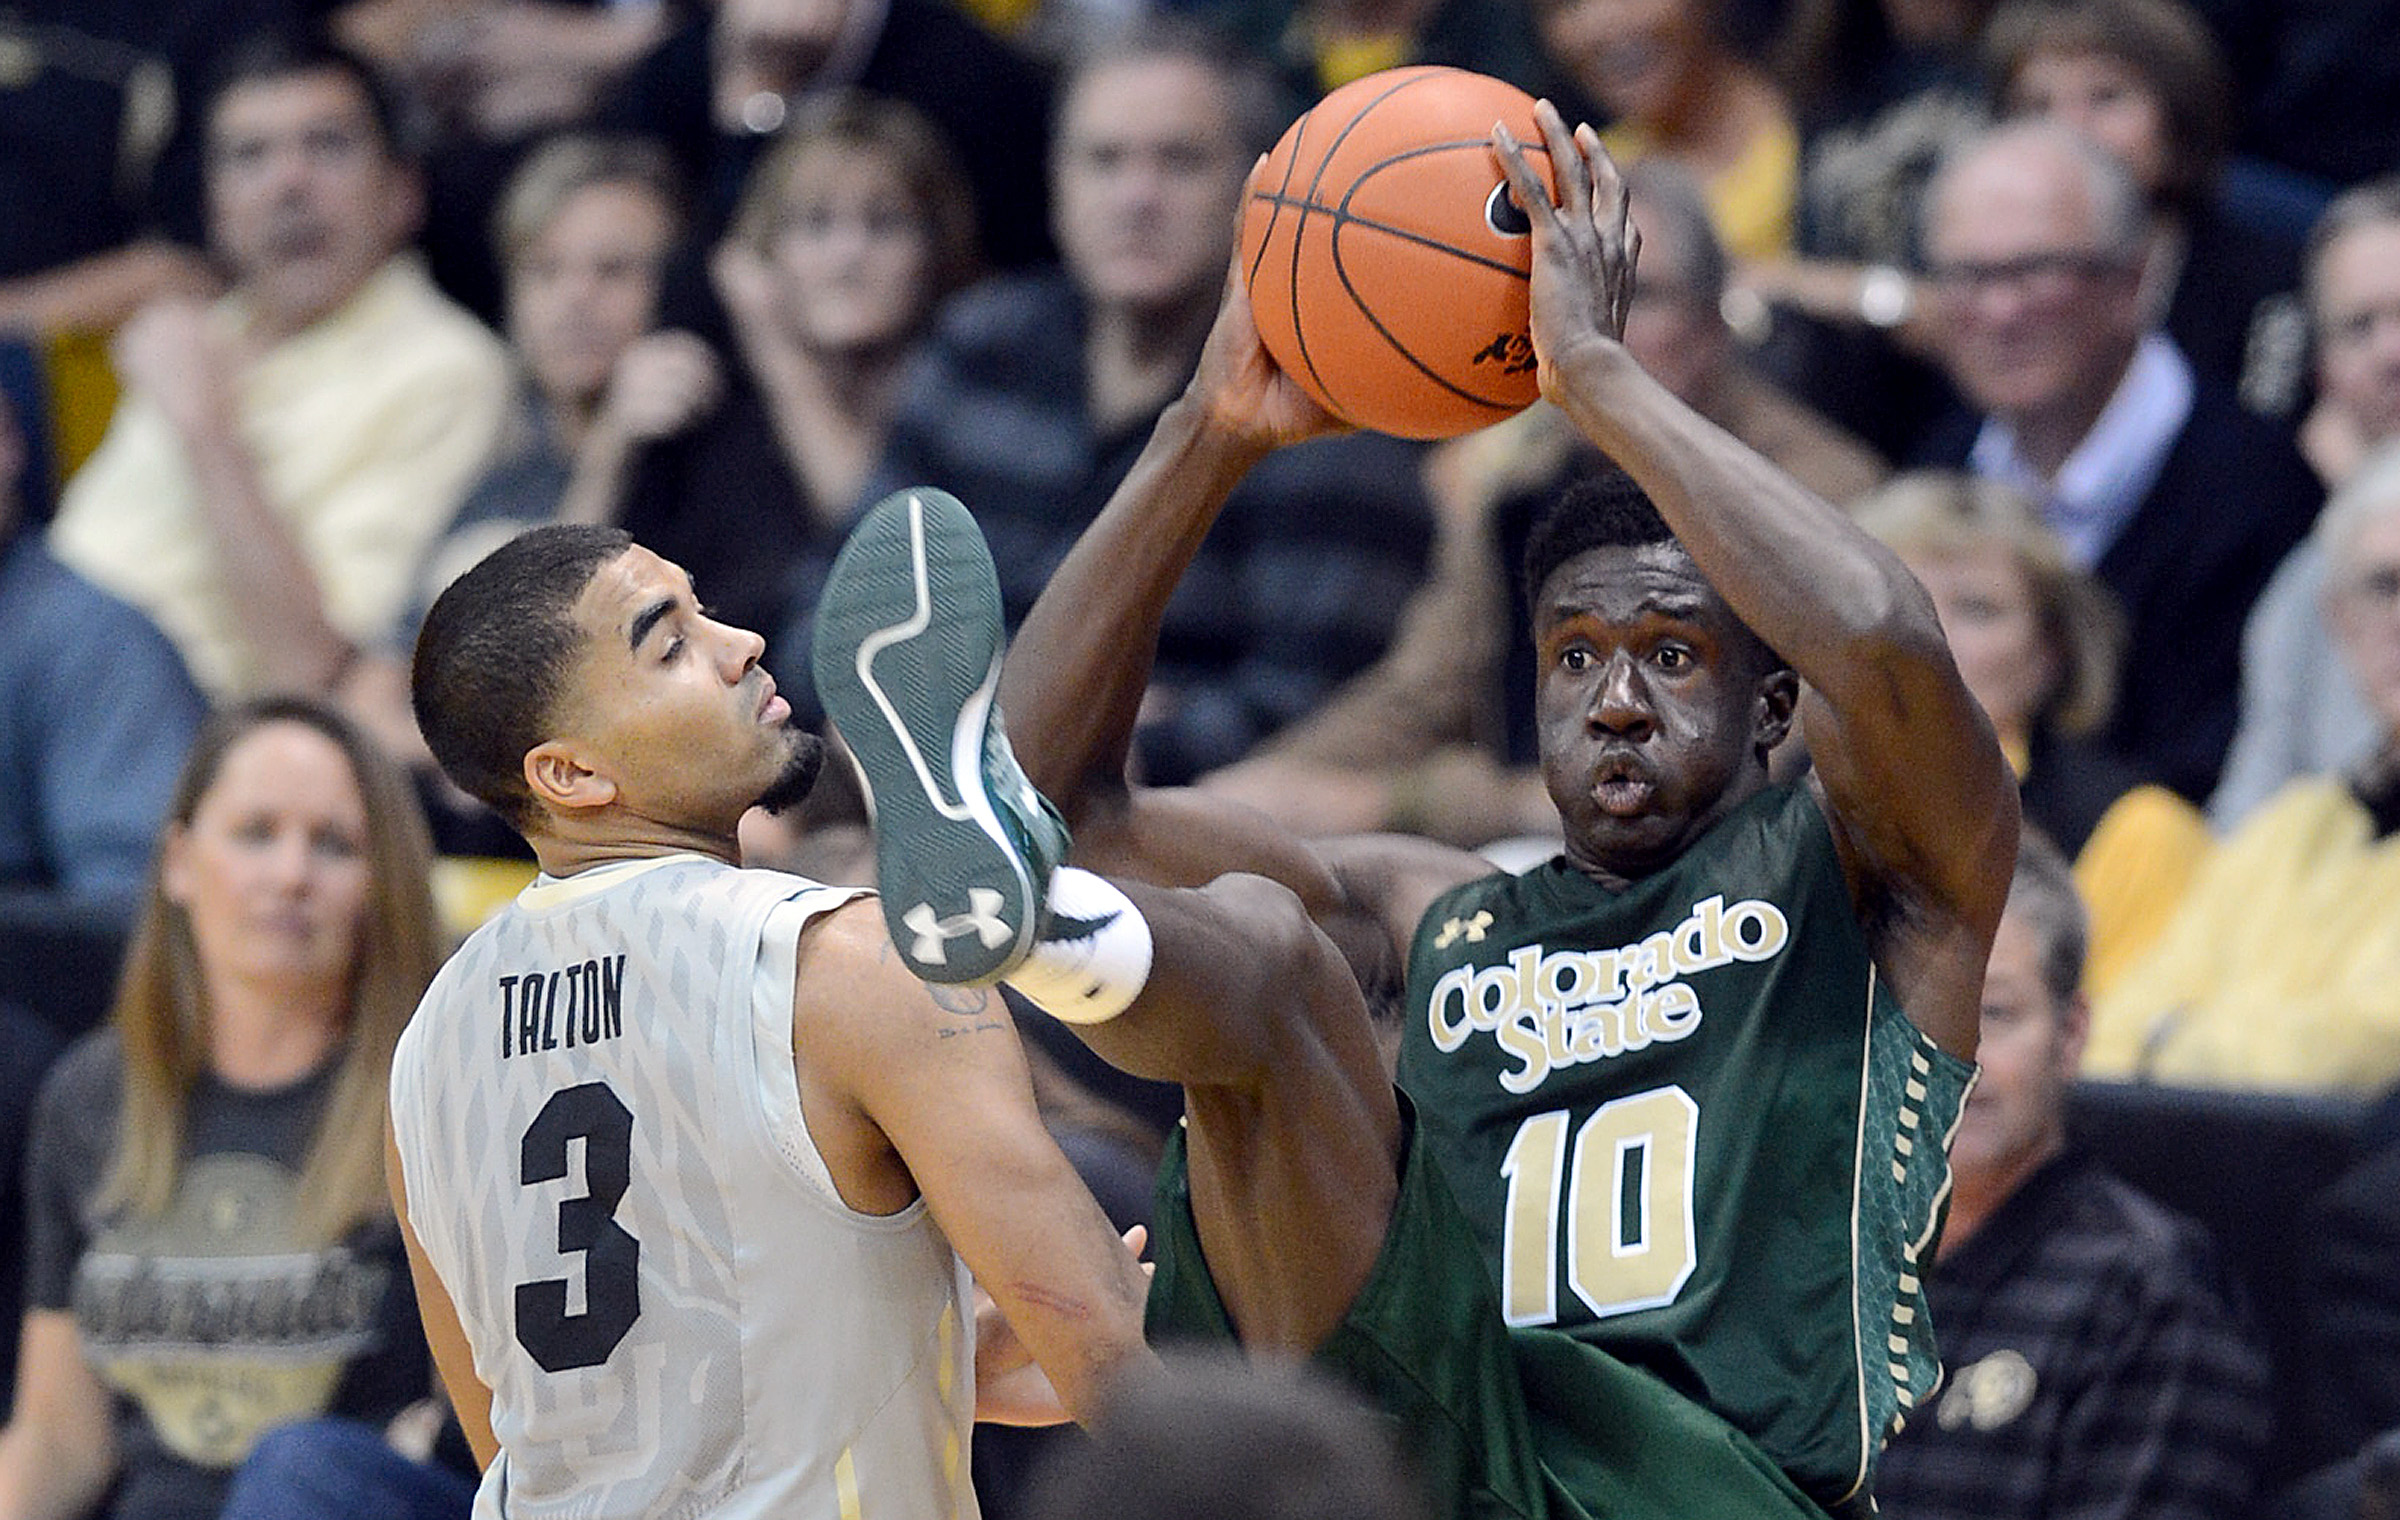 Colorado State's Joe De Ciman,(10) intercepts a pass meant for Colorado's Xavier Talton, left, during the second half of an NCAA college basketball game, Wednesday, Dec. 10, 2014 in Boulder, Colo. (AP Photo/The Daily Camera, Cliff Grassmick)